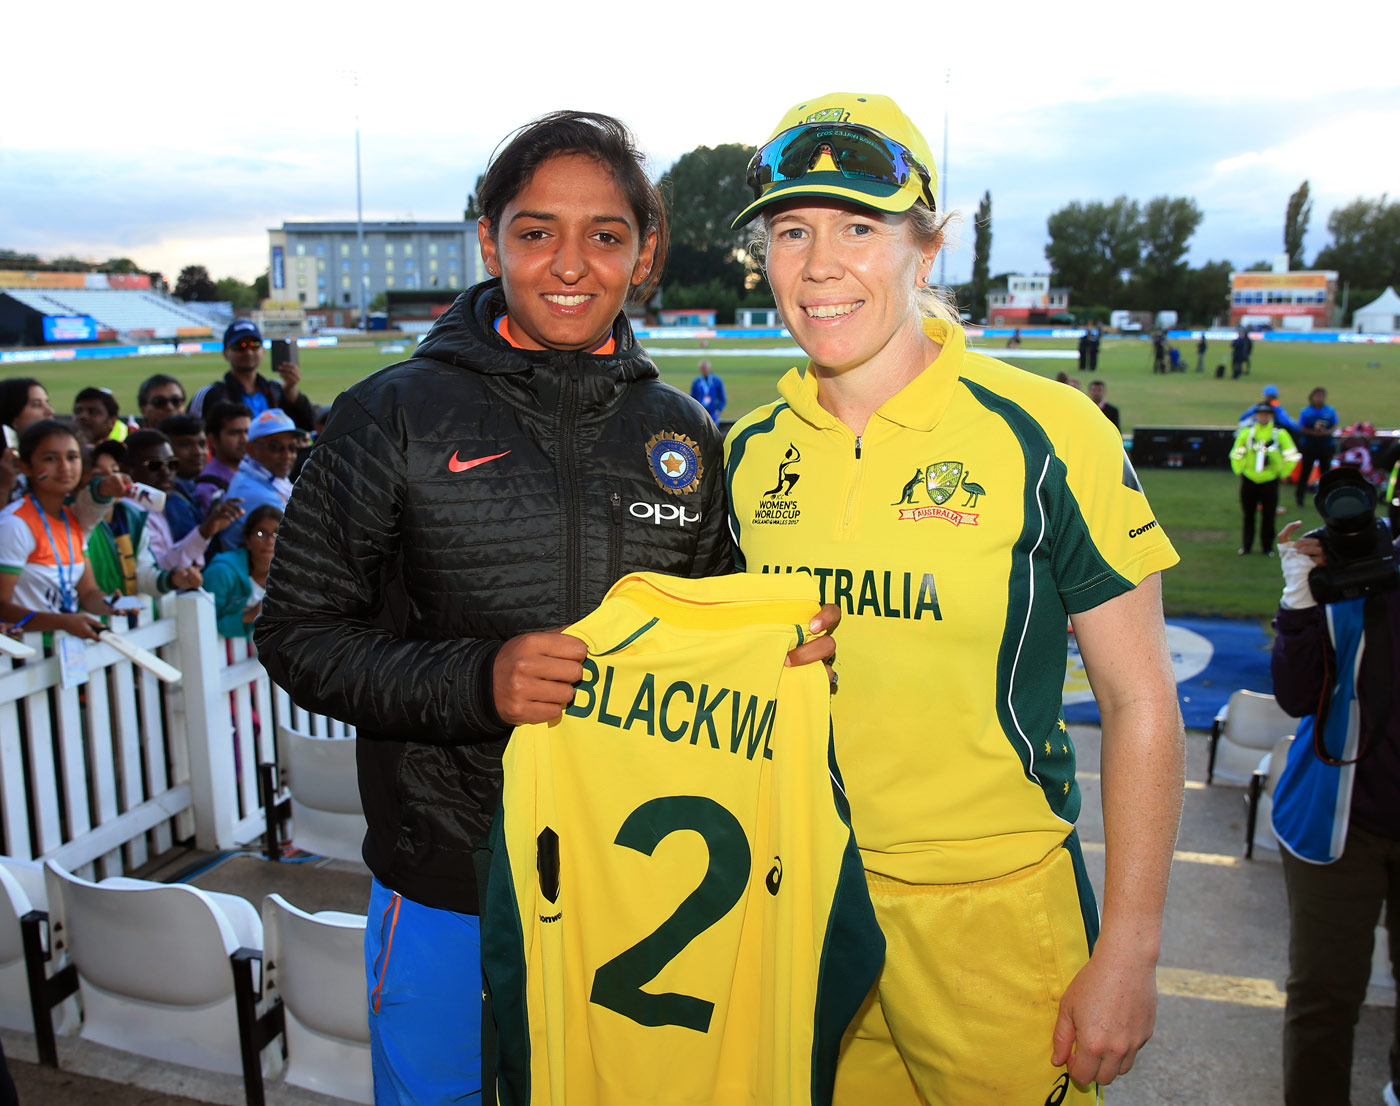 Blackwell was on the receiving end when Kaur went on her 171-run rampage in the 2017 Women's World Cup semi-final